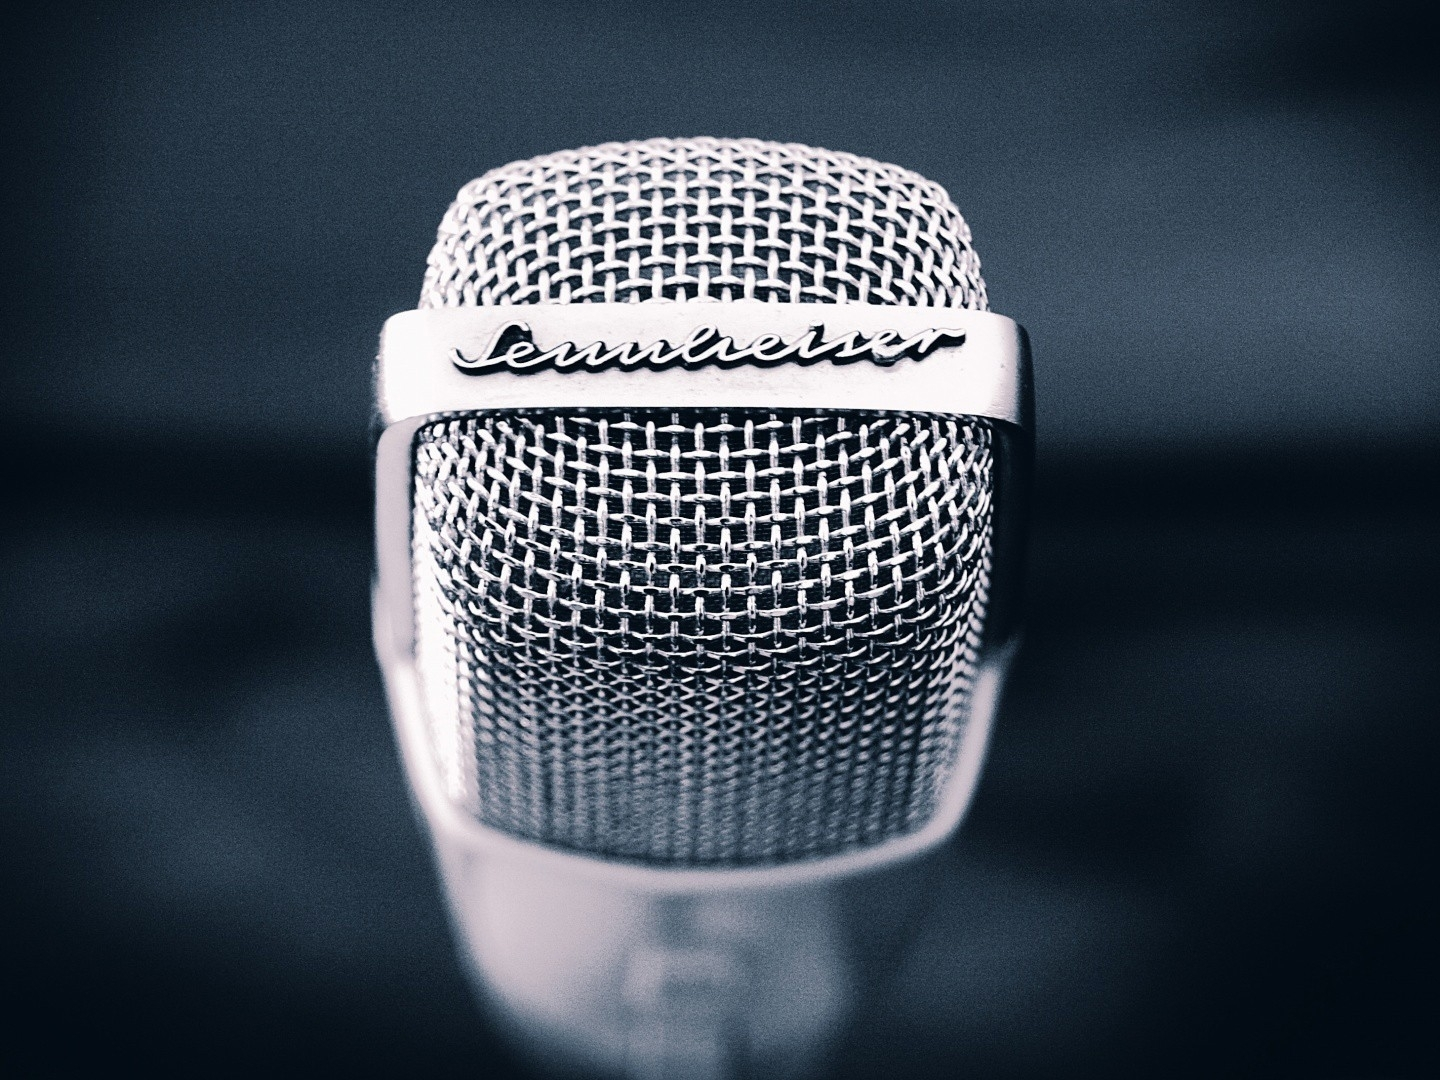 Recording - Capture and edit professional recordings in class with an audio interface and microphones.